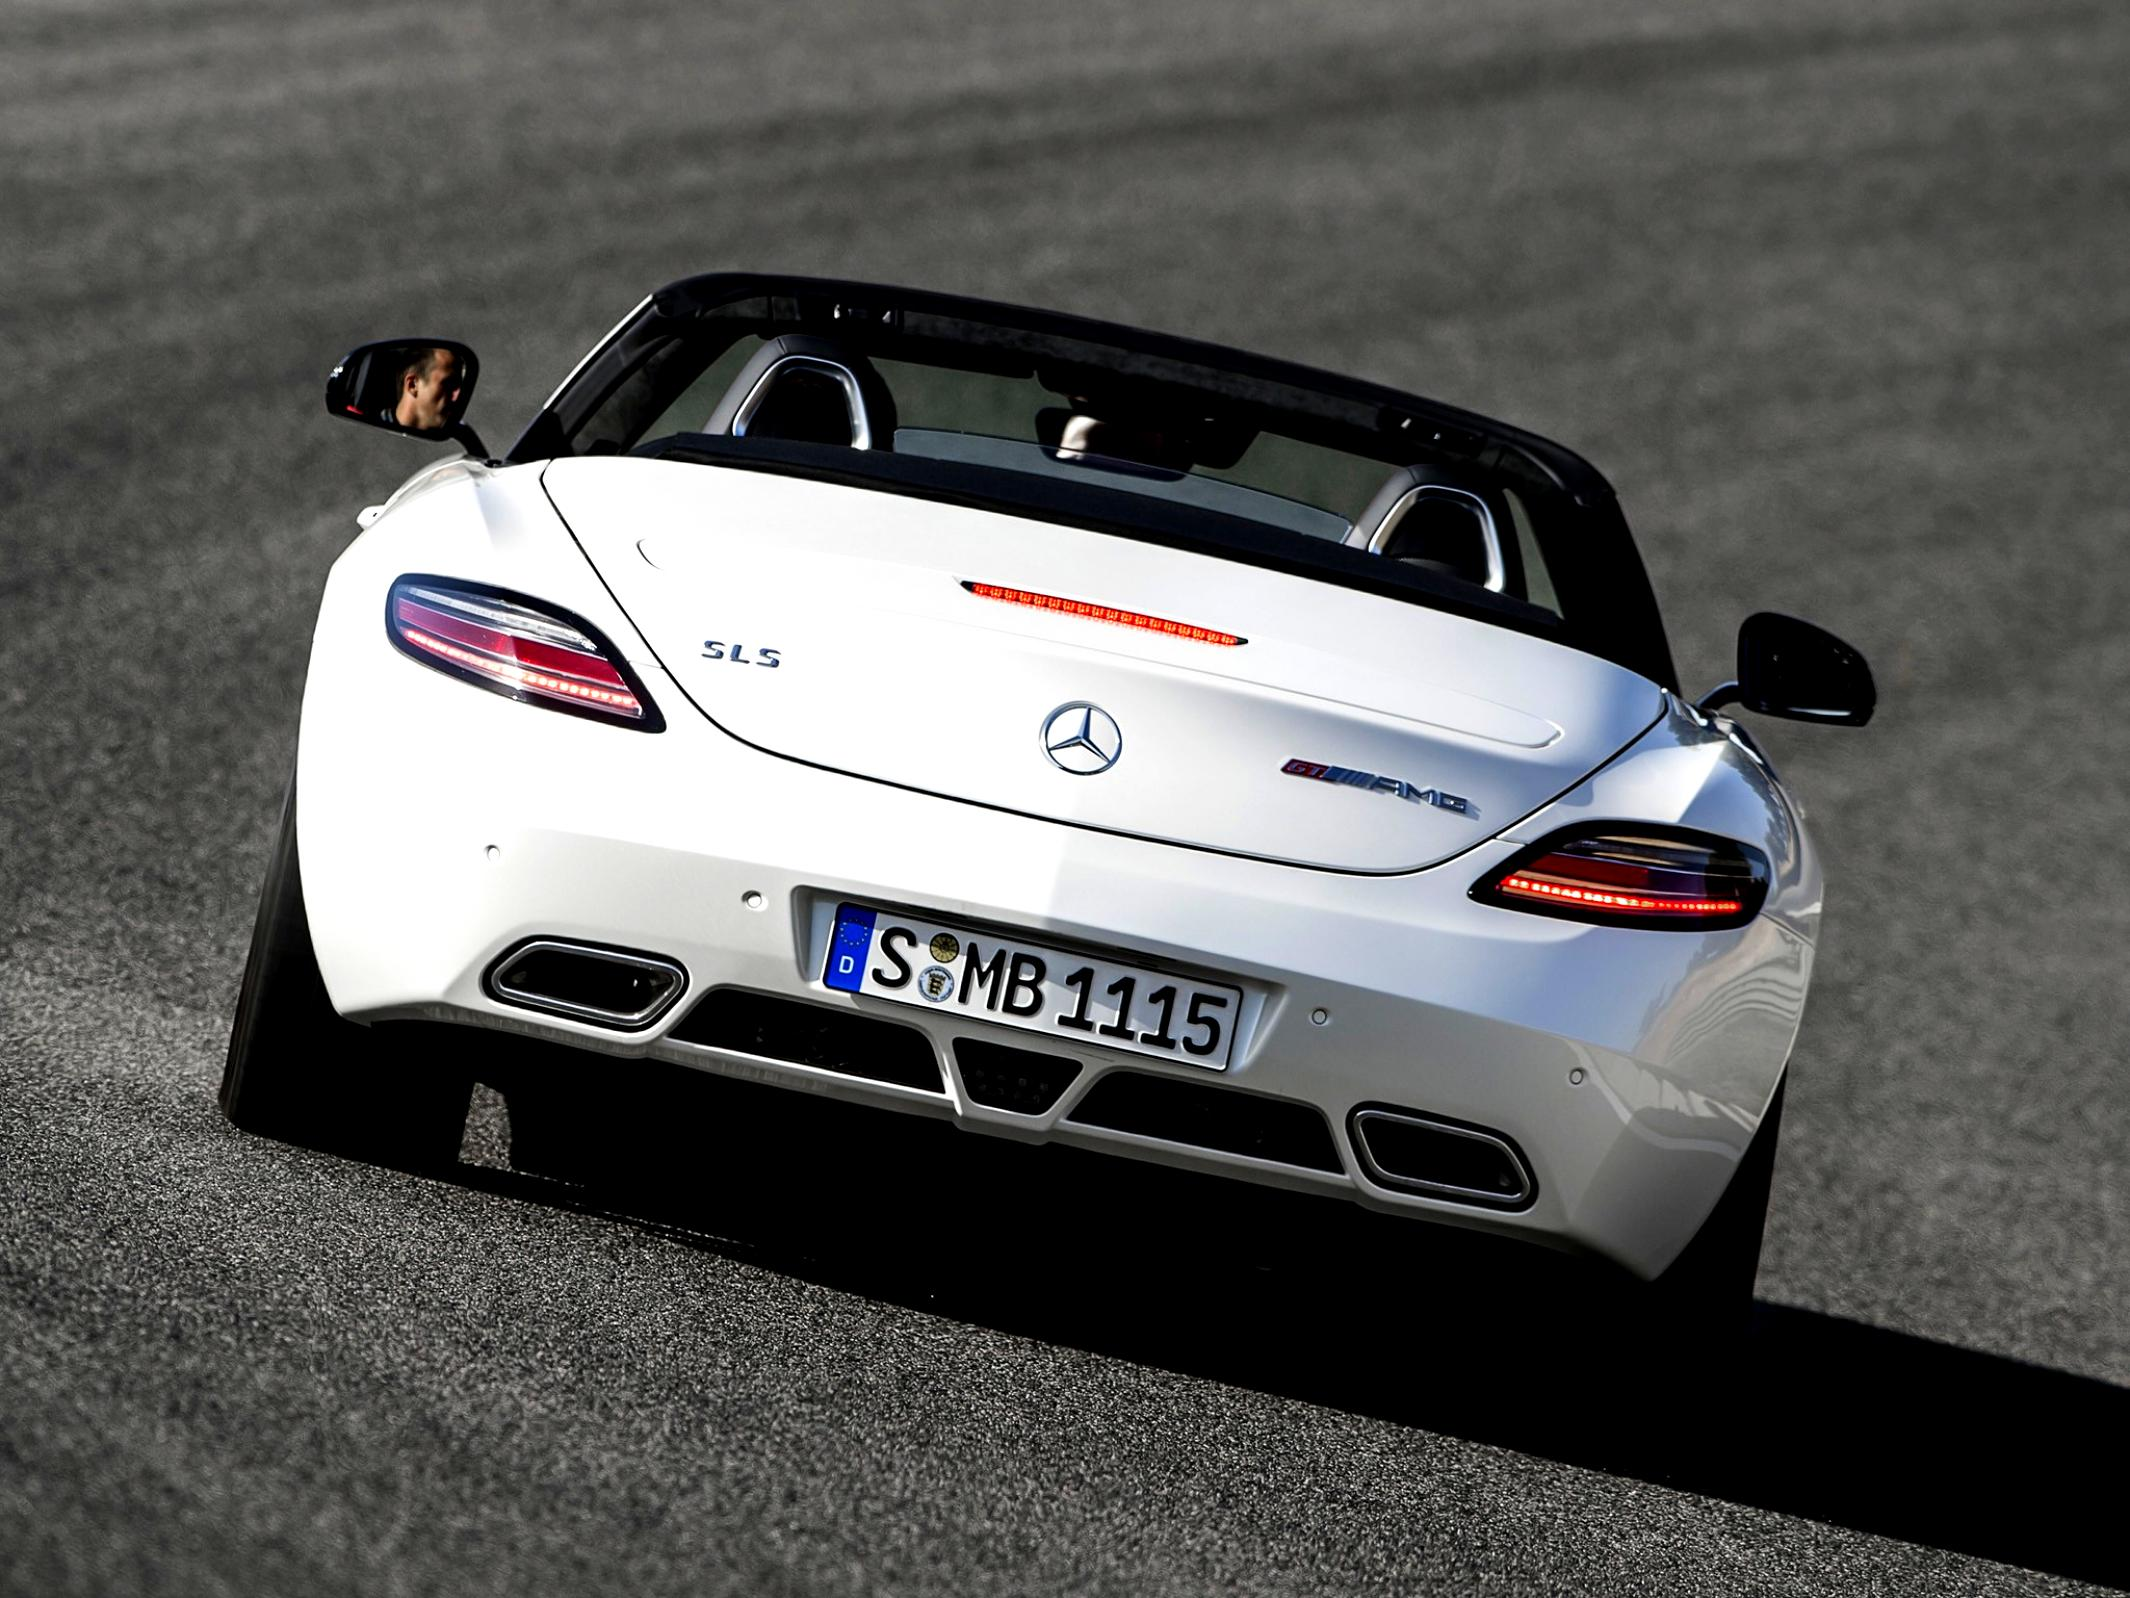 Mercedes Benz SLS AMG Roadster C197 2011 #26